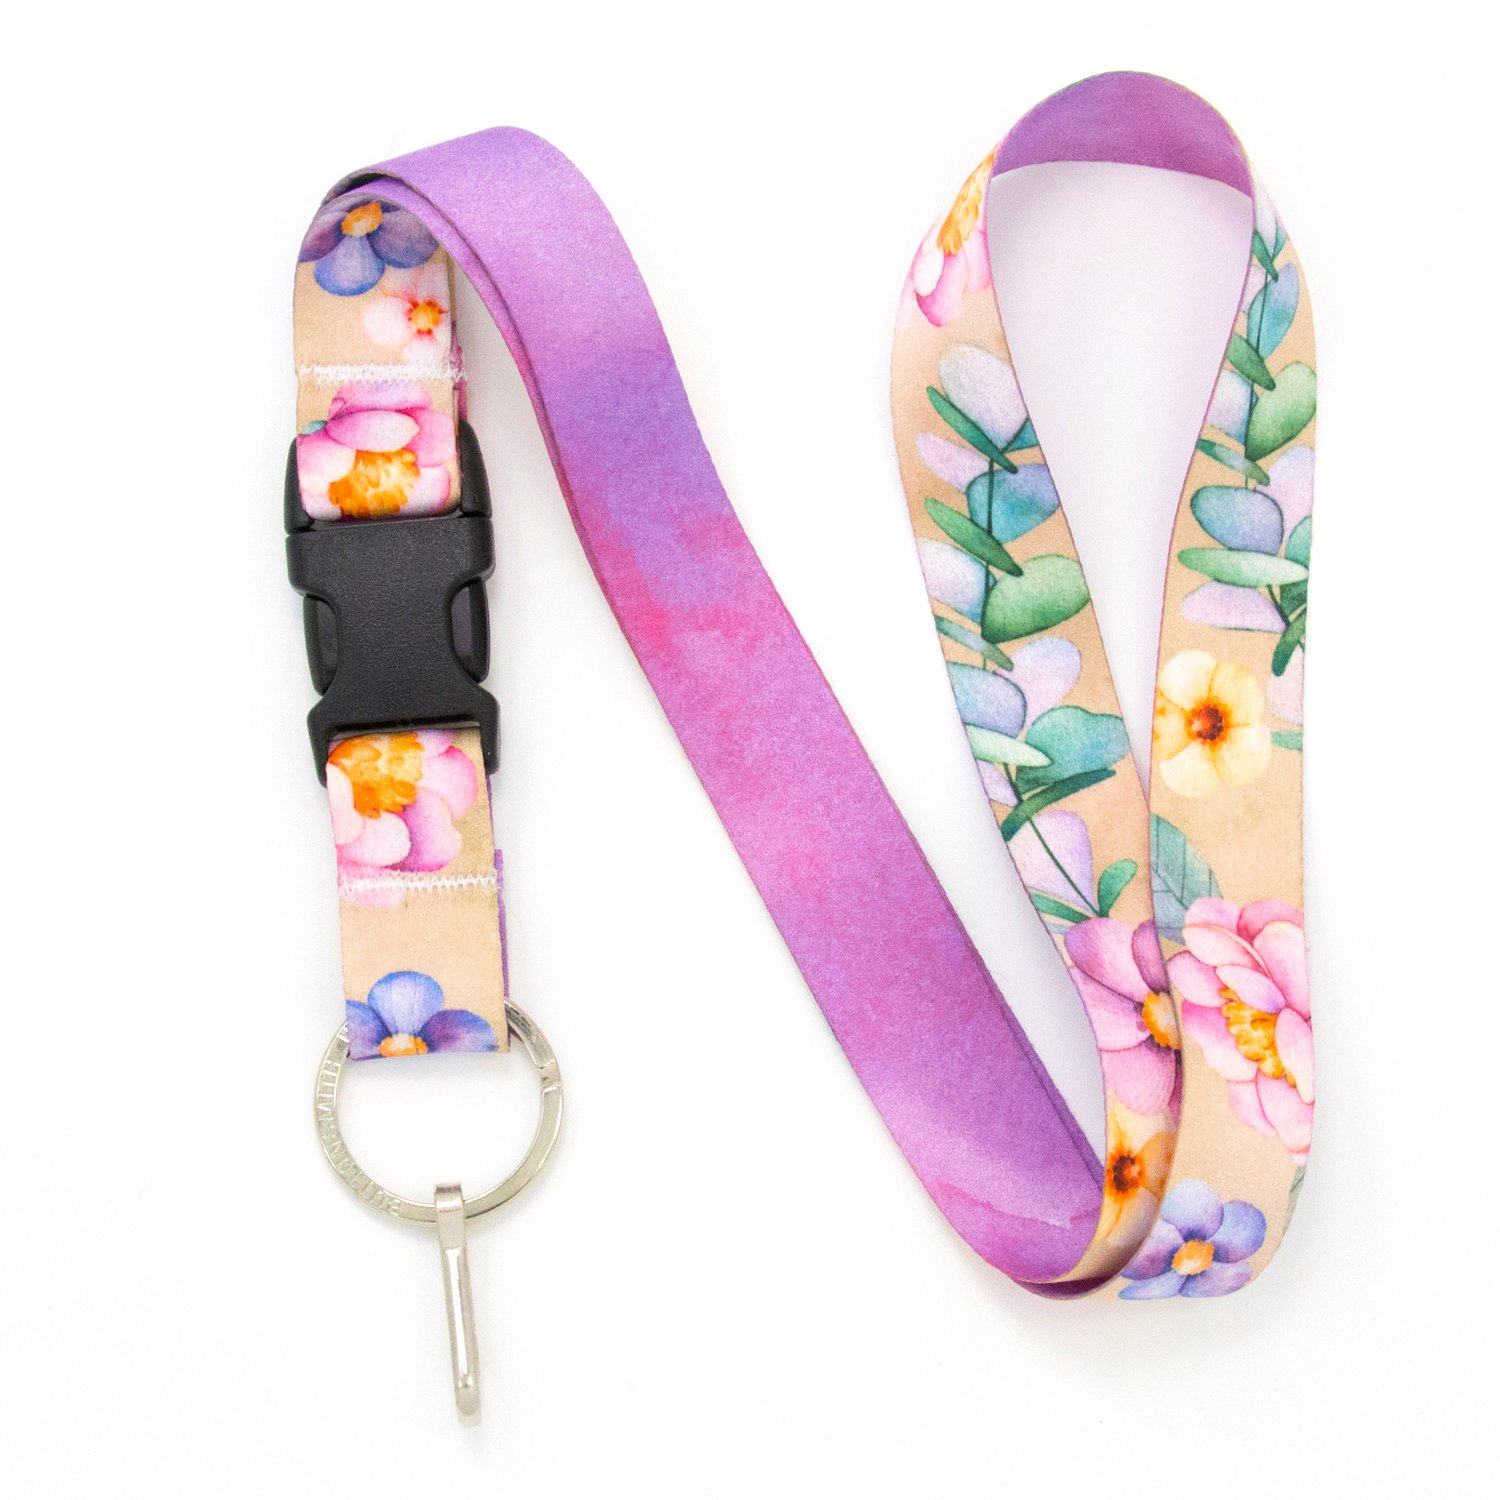 Buttonsmith Watercolor Flowers Premium Lanyard with Buckle and Flat Ring - Made in The USA